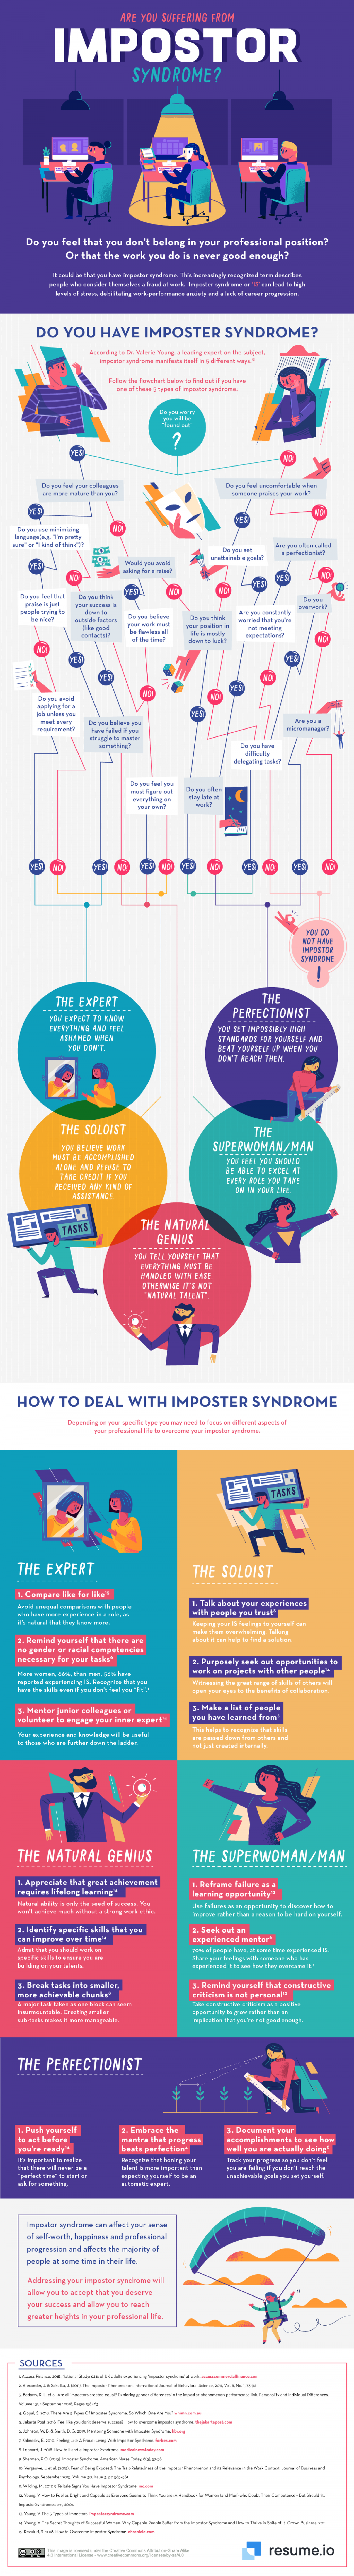 :::Are you suffering from impostor syndrome?::: Infographic